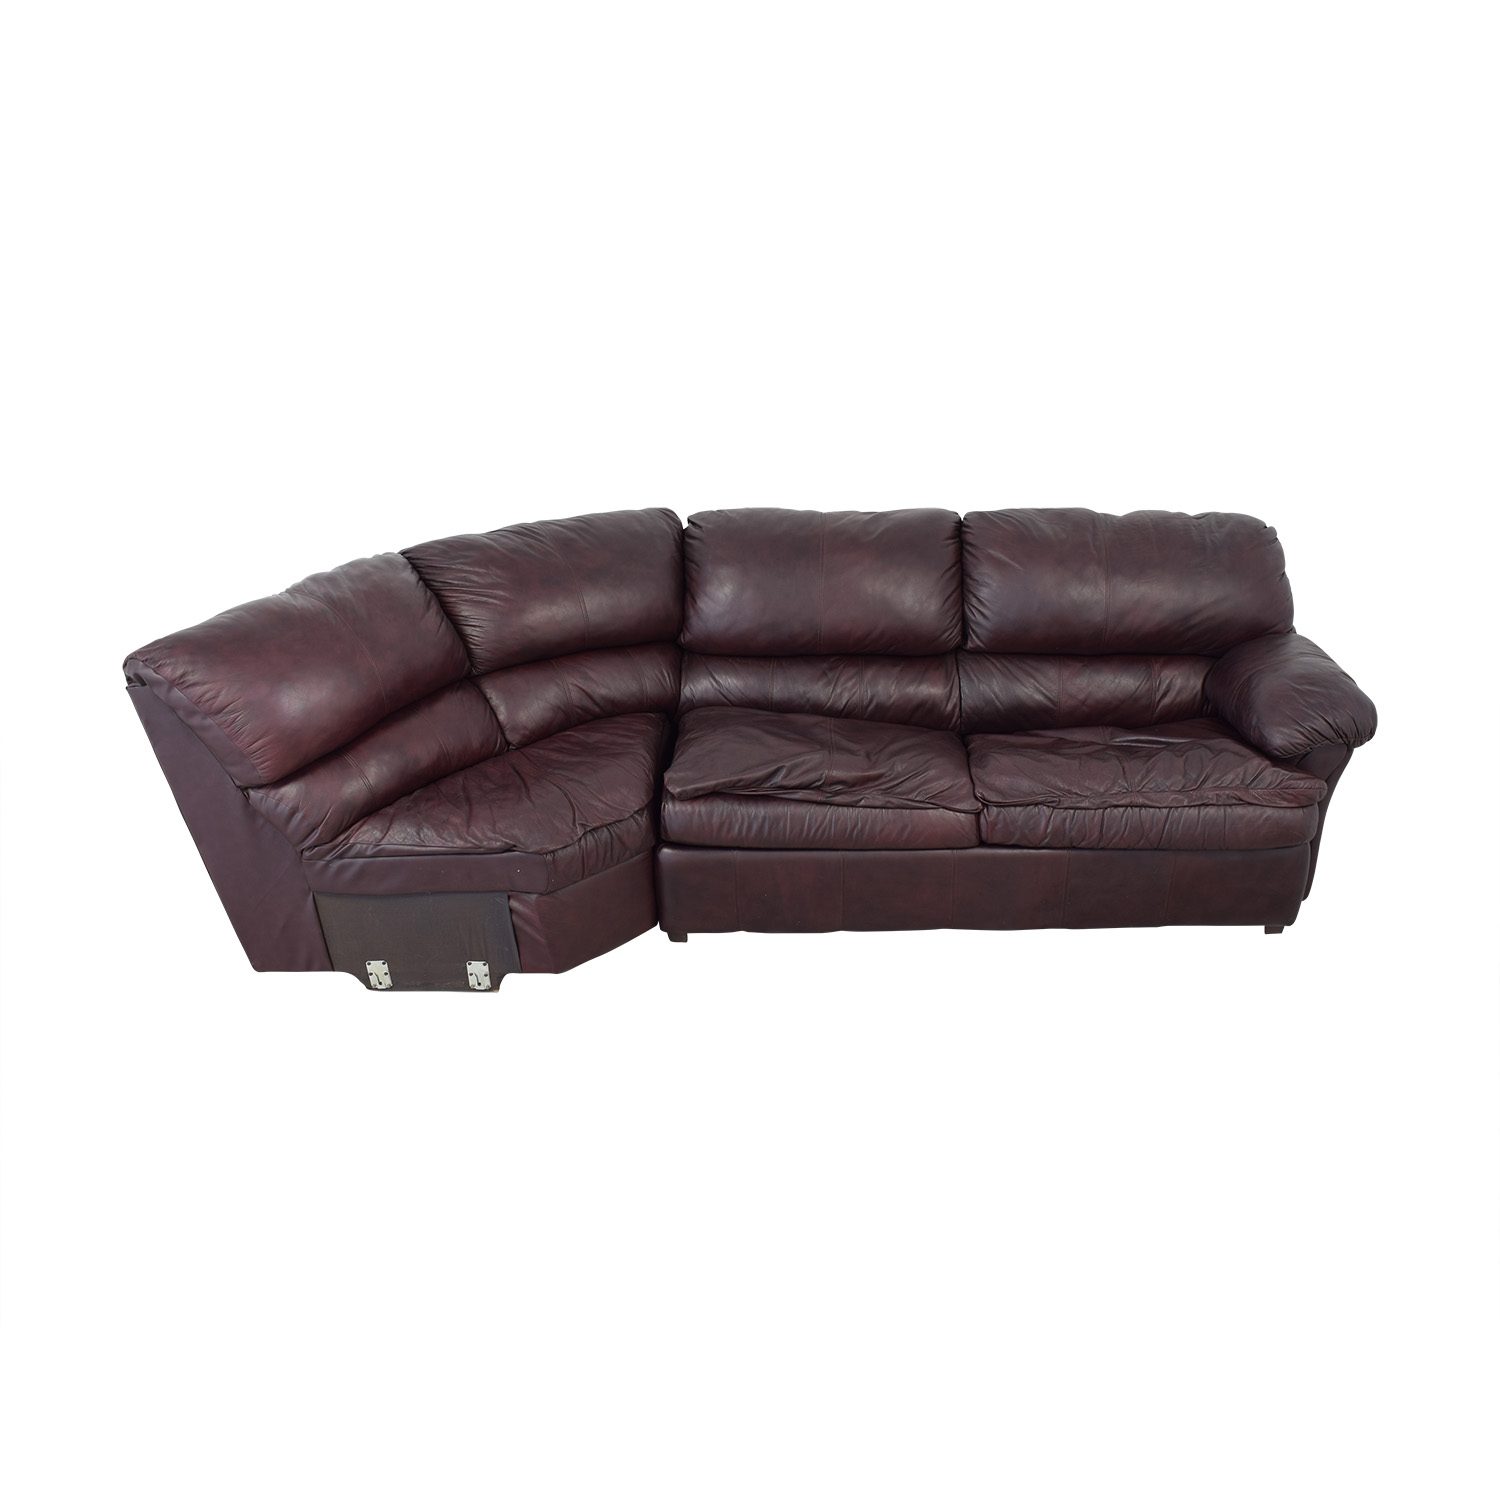 70% OFF - Leather Sleeper Sectional Sofa Bed / Sofas